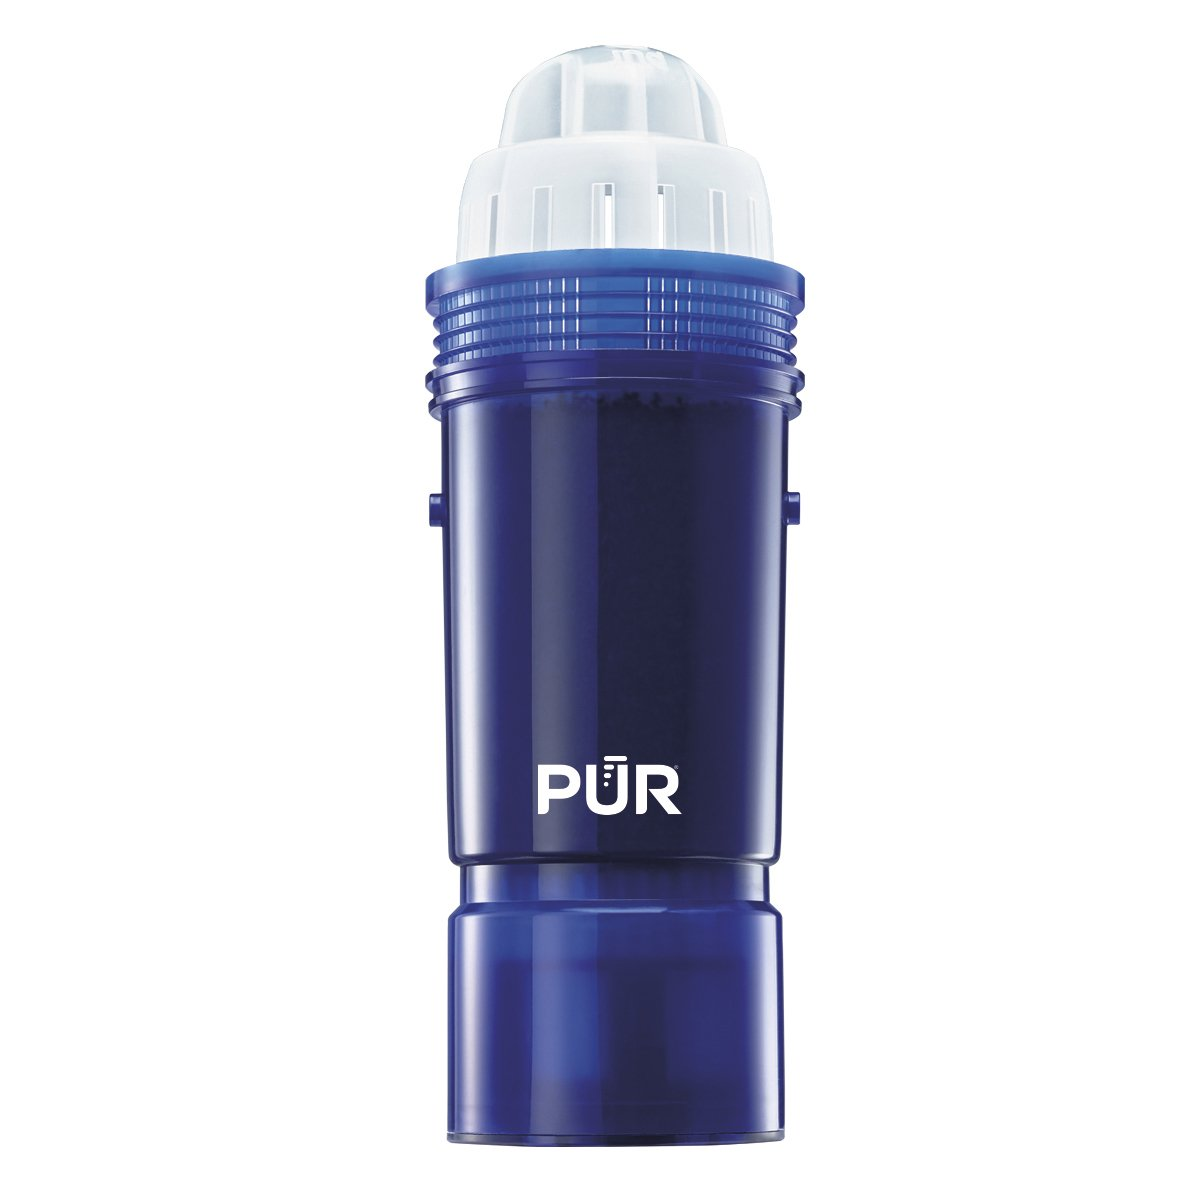 PUR Lead Reduction Pitcher Replacement Water Filter, 3 Pack, Water Filter Pitcher Filter Replacements, Certified by WQA to Remove 99% of Lead, Filters Up to 30 Gallons/2 Months of Water by PUR